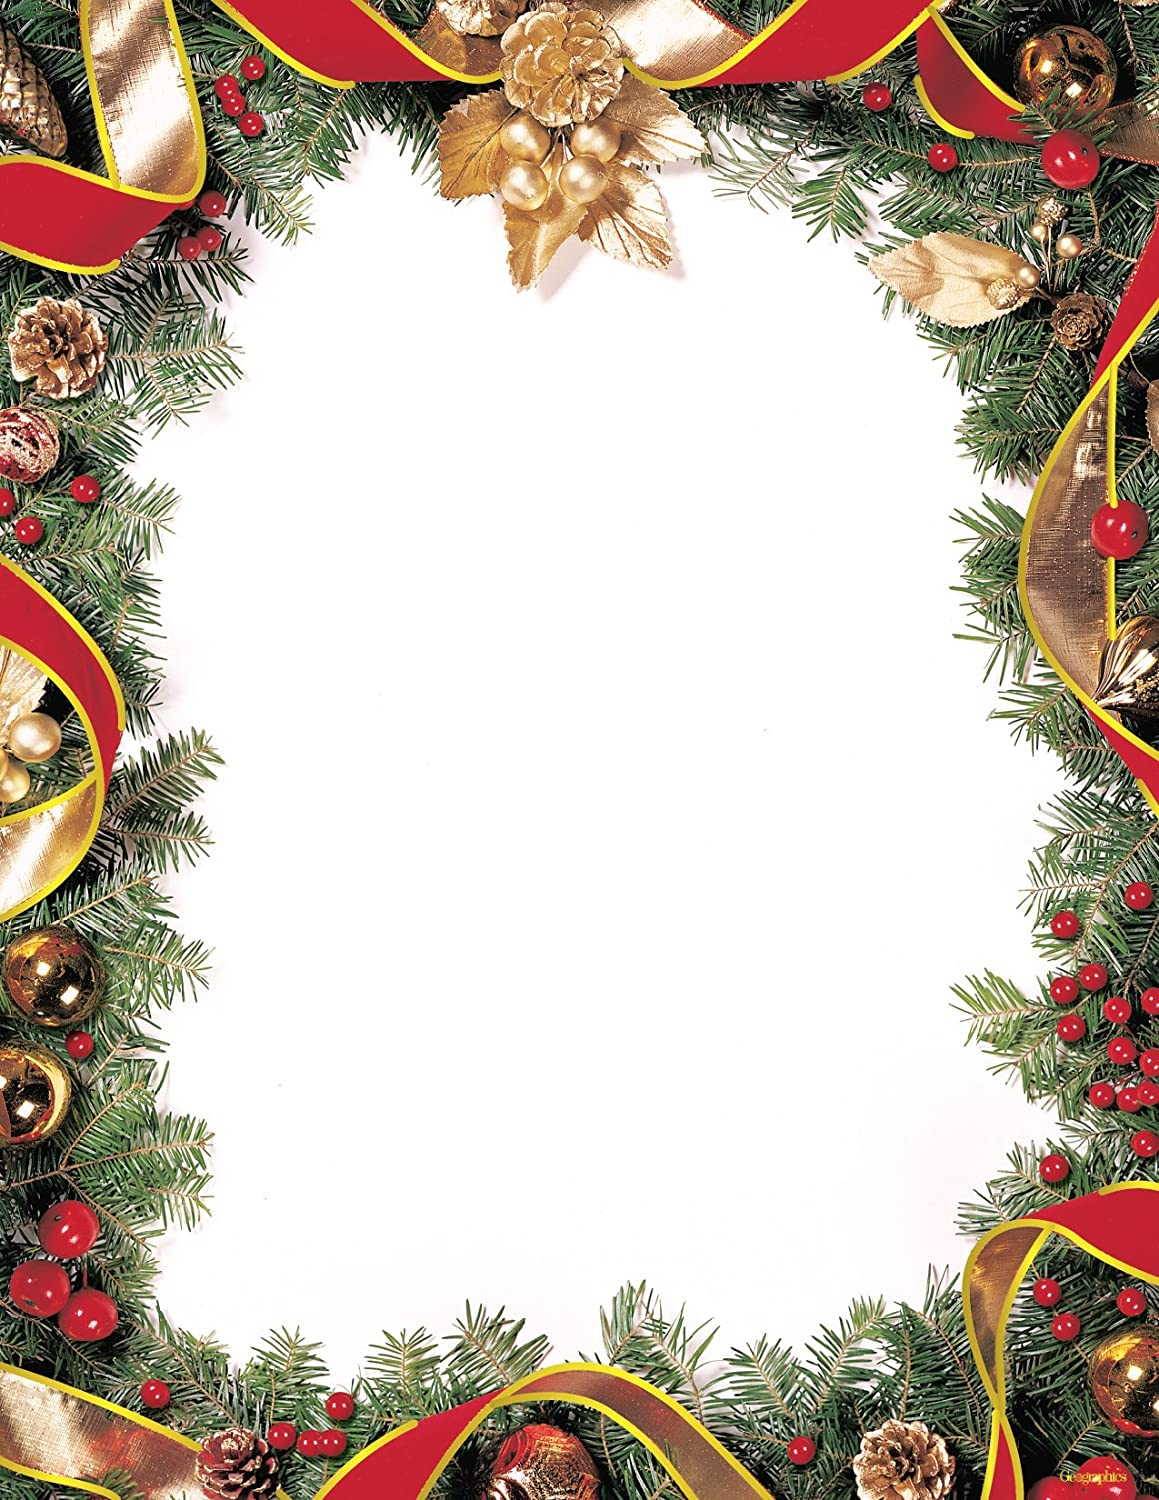 Amazon.com : Geographics Spruce Wreath Gold Foil Letterhead, 8.5 x ...